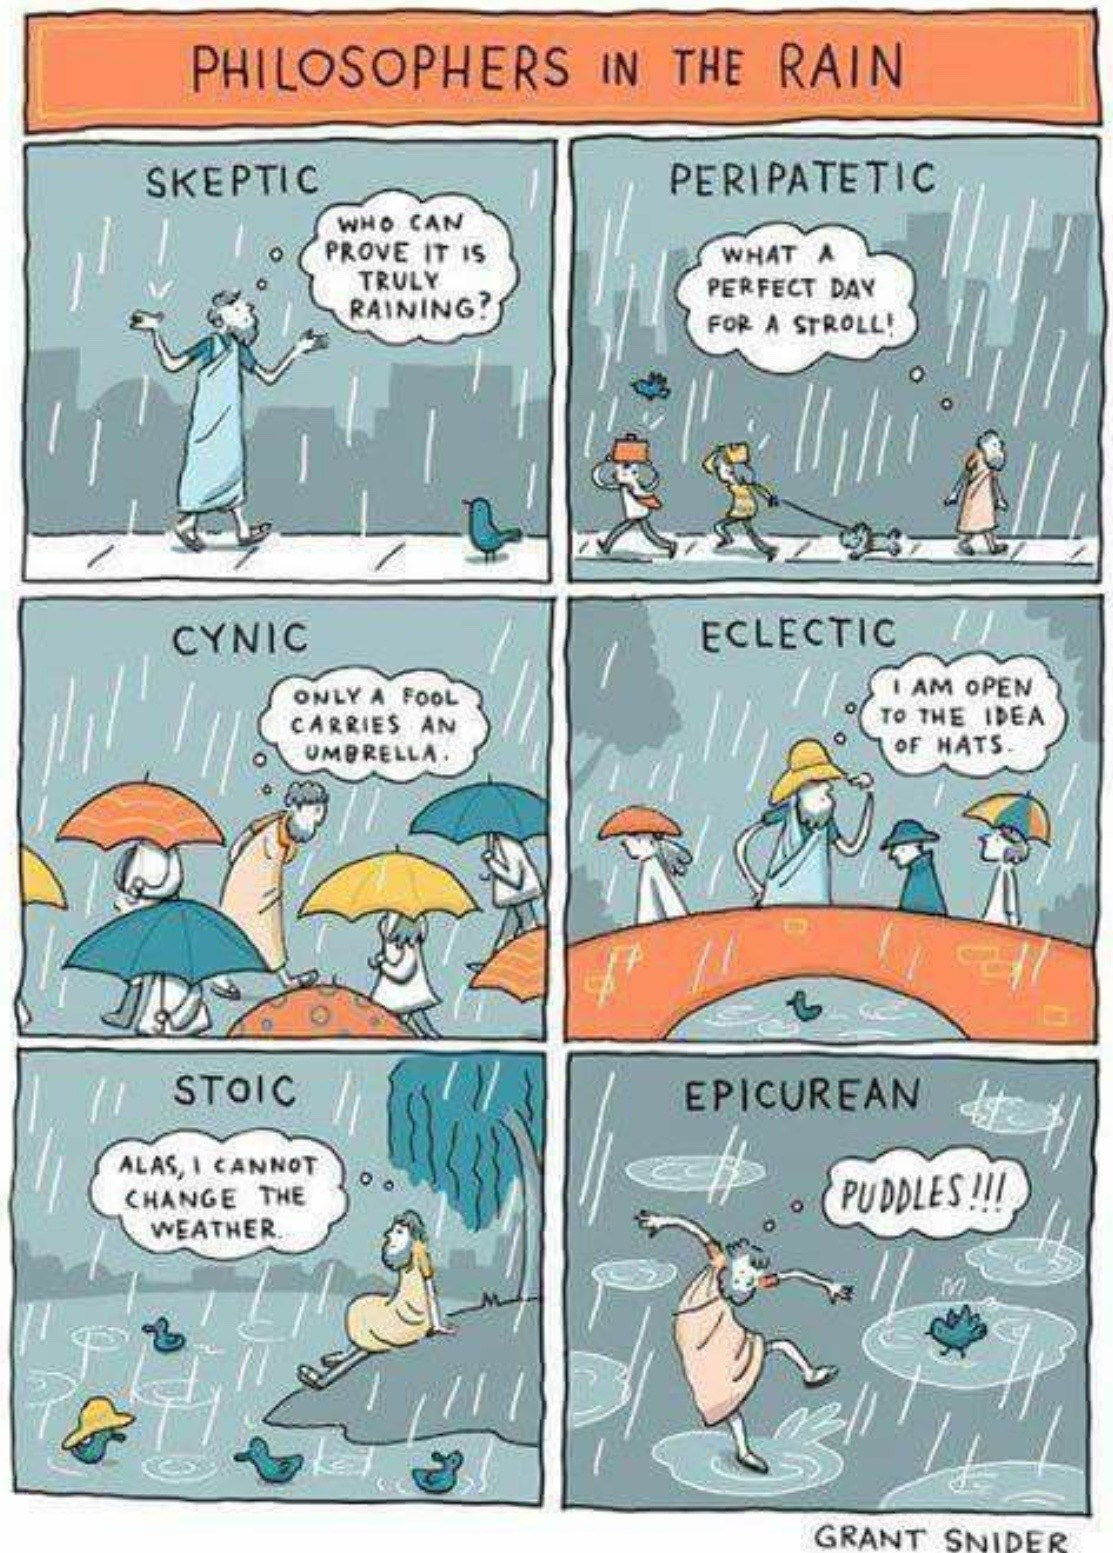 philosophers-in-the-rain.jpg